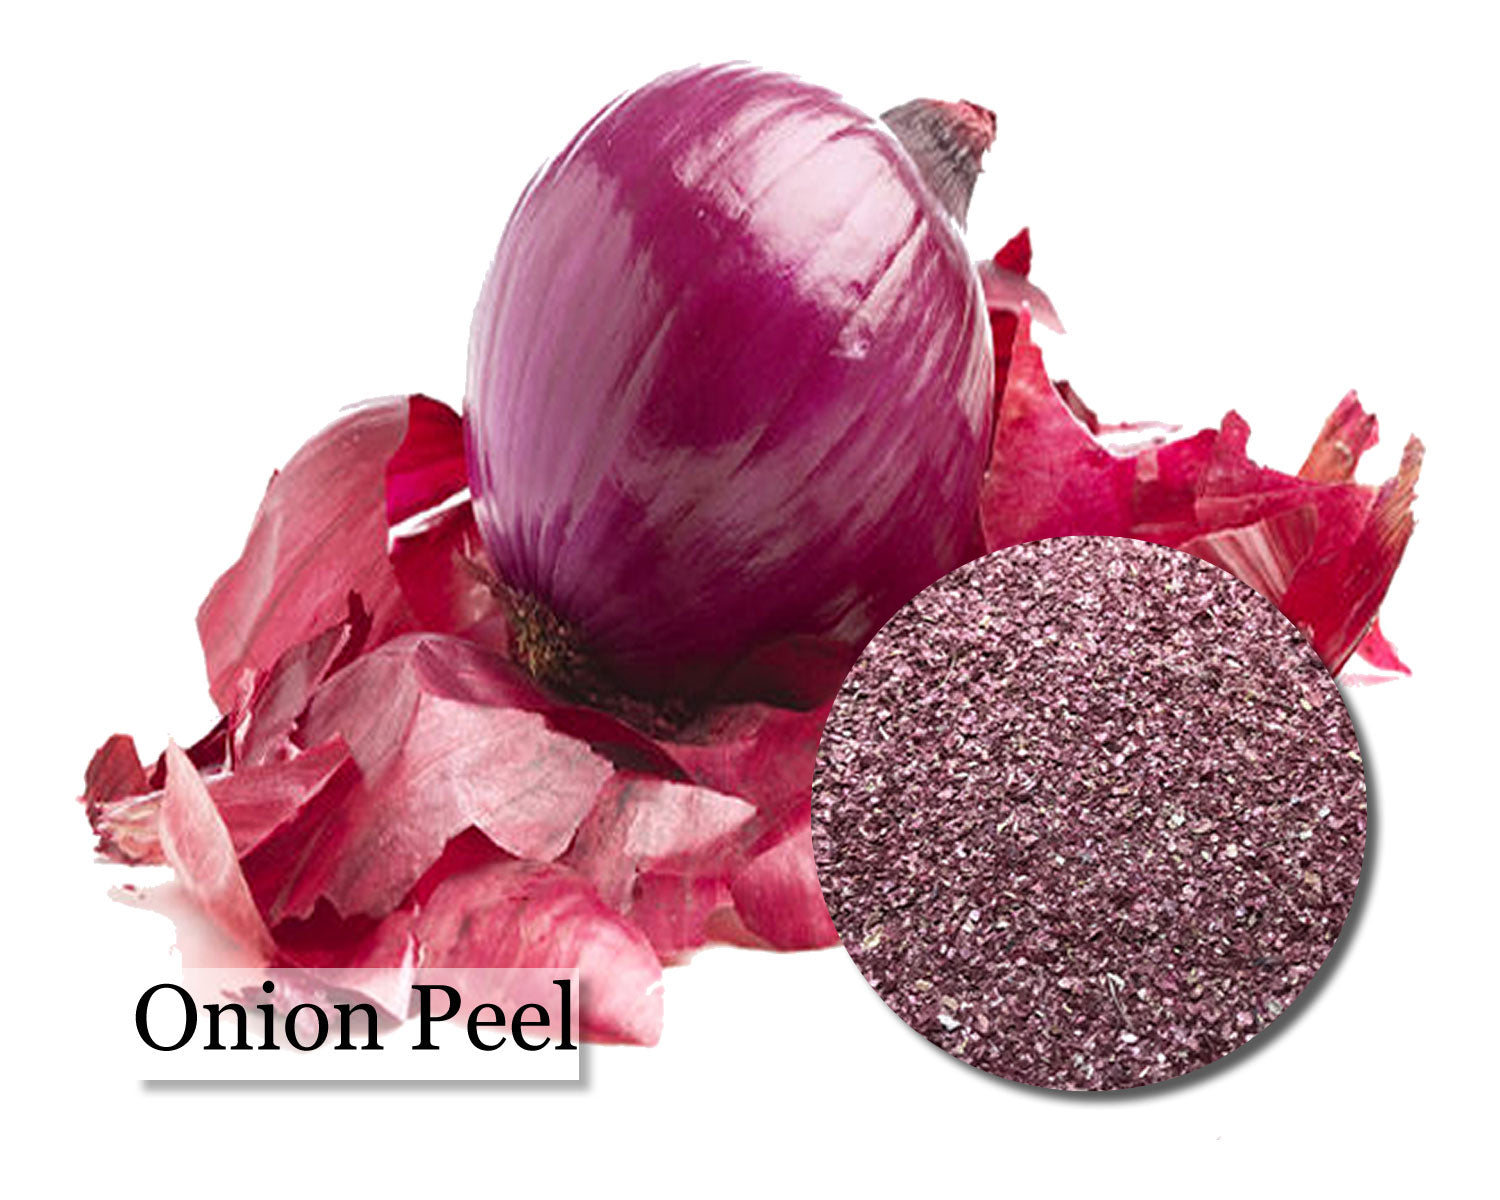 Onion Peel 1oz